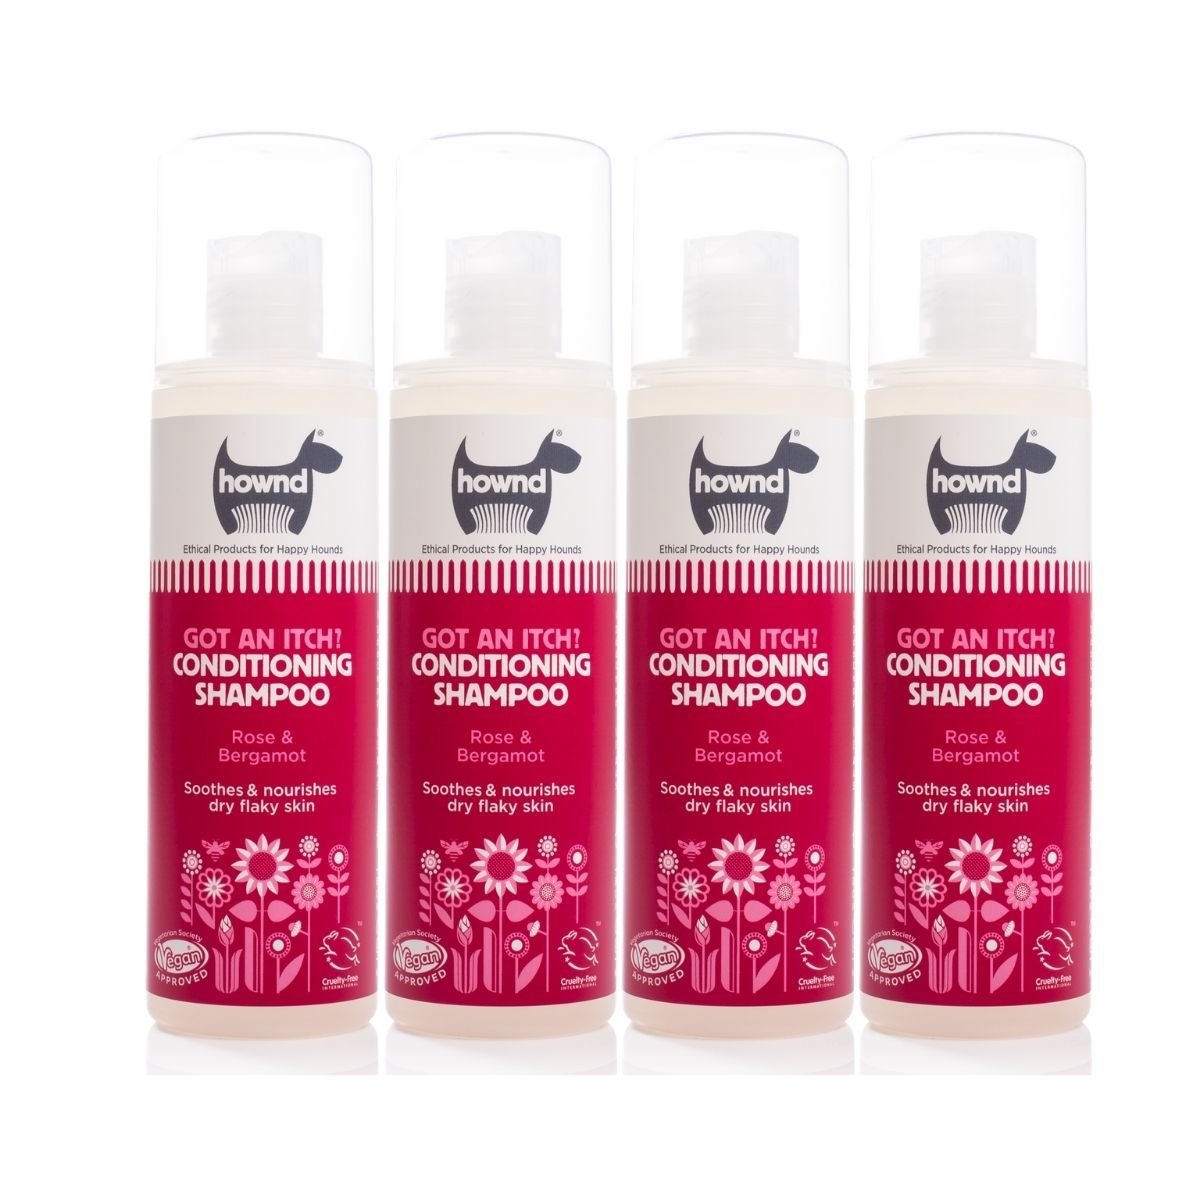 Got An Itch? Conditioning Shampoo (250ml) x 4 - Hownd